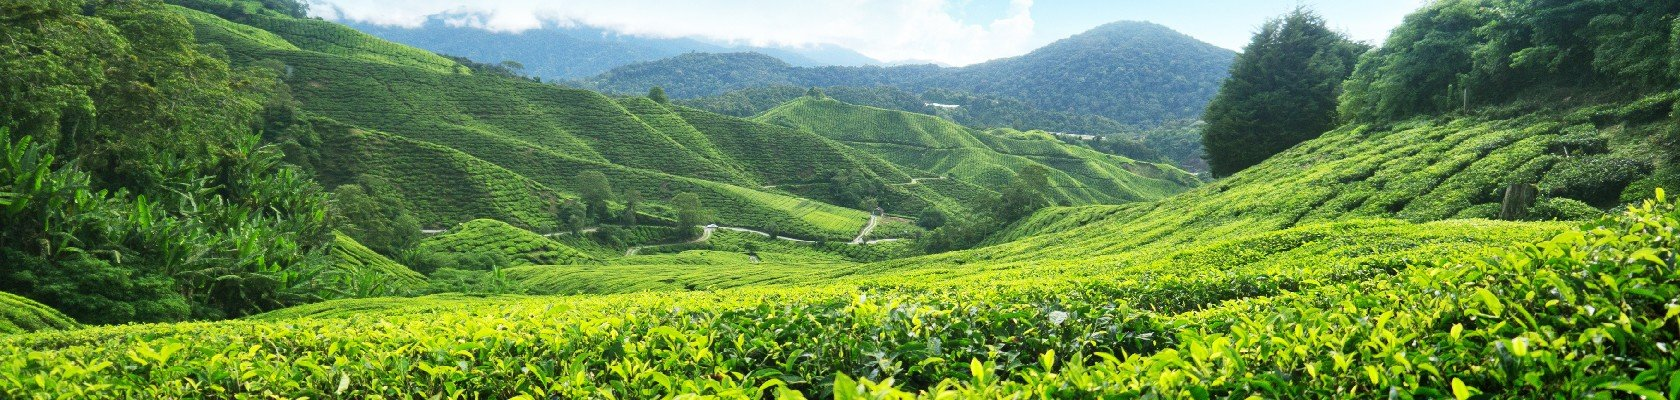 Theevelden van de Cameron Highlands